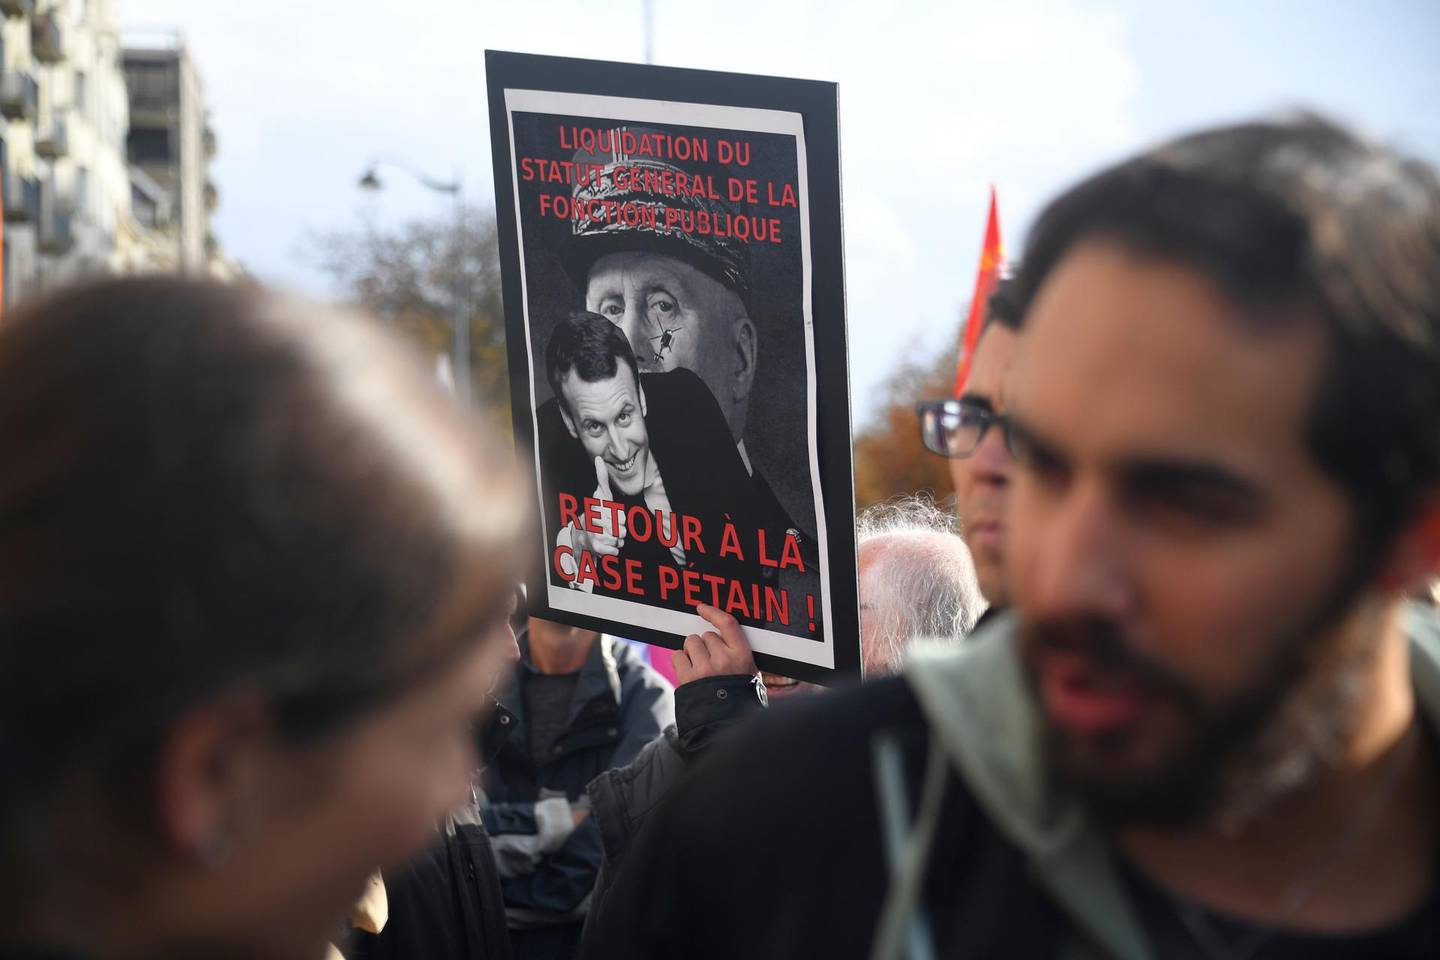 """A teacher holds a banner that reads, """"Liquidation of the general status of the civil service. Back to square Petain"""" during a nationwide strike to denounce the abolition of posts in the national education system in Rennes, westen France on November 12, 2018.  / AFP / DAMIEN MEYER"""